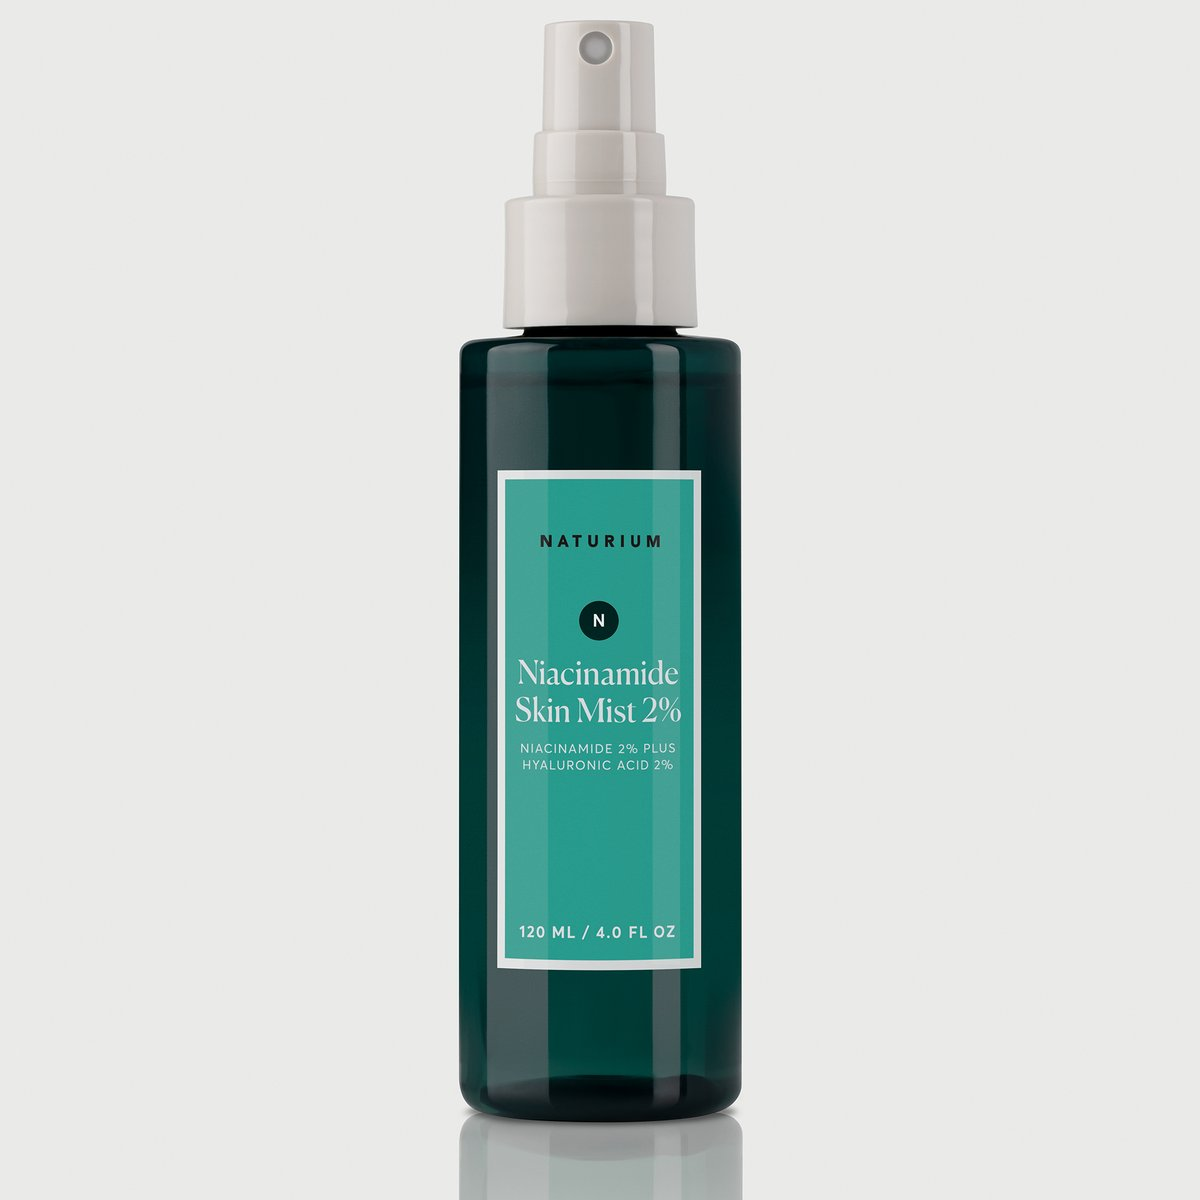 Naturium Niacinamide Skin Mist 2% (120ml). Worldwide Shipping - Singapore, Malaysia, Brunei, Philippines, Indonesia, India, Australia, Hong Kong, UK, USA, UK, Europe!